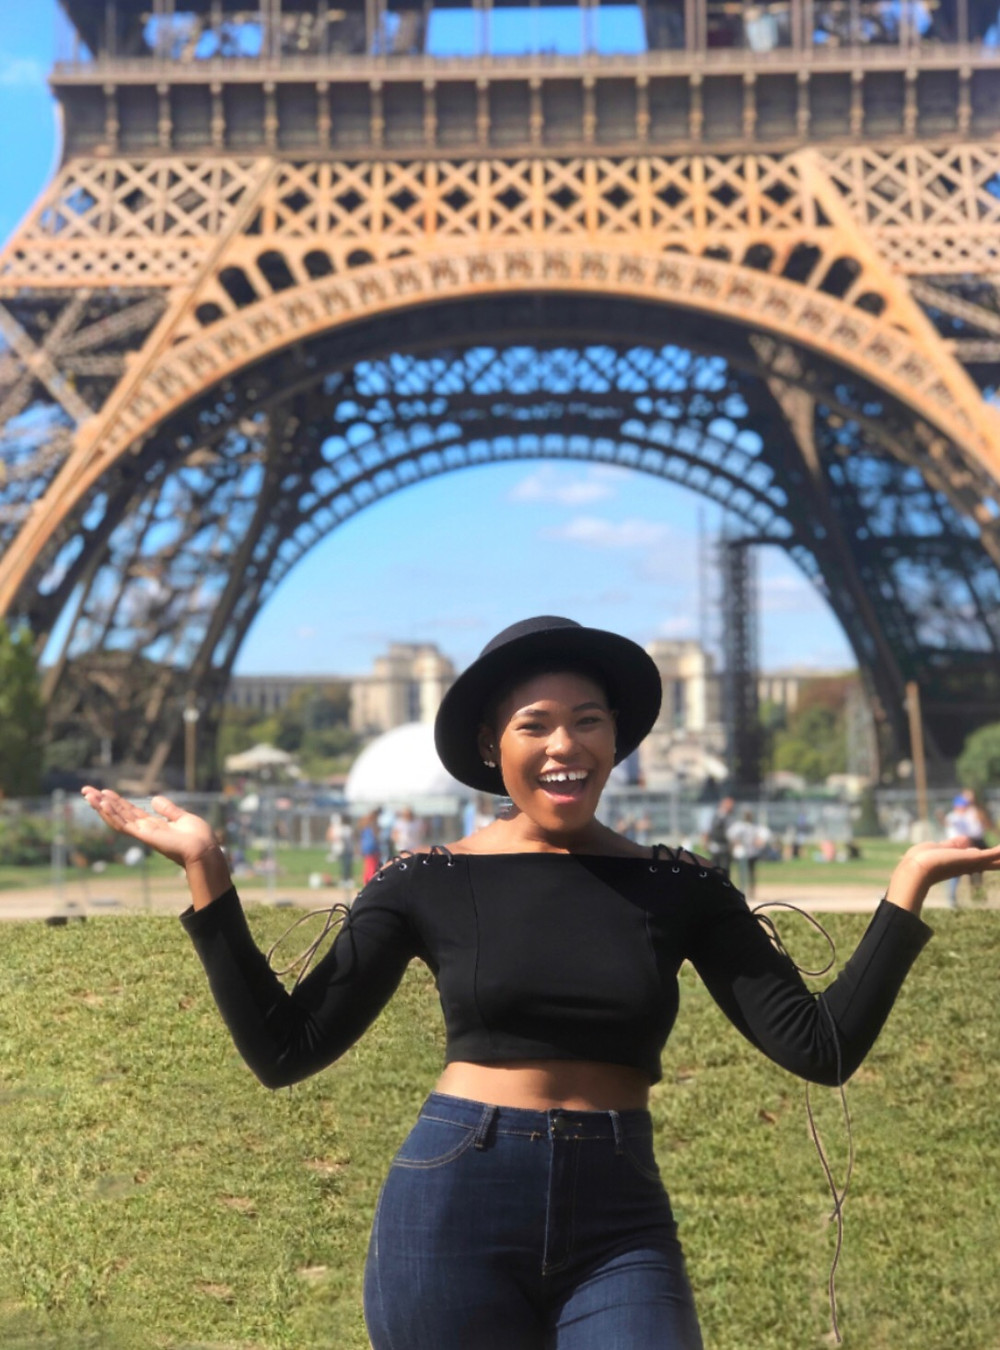 arms up in front Eiffel Tower